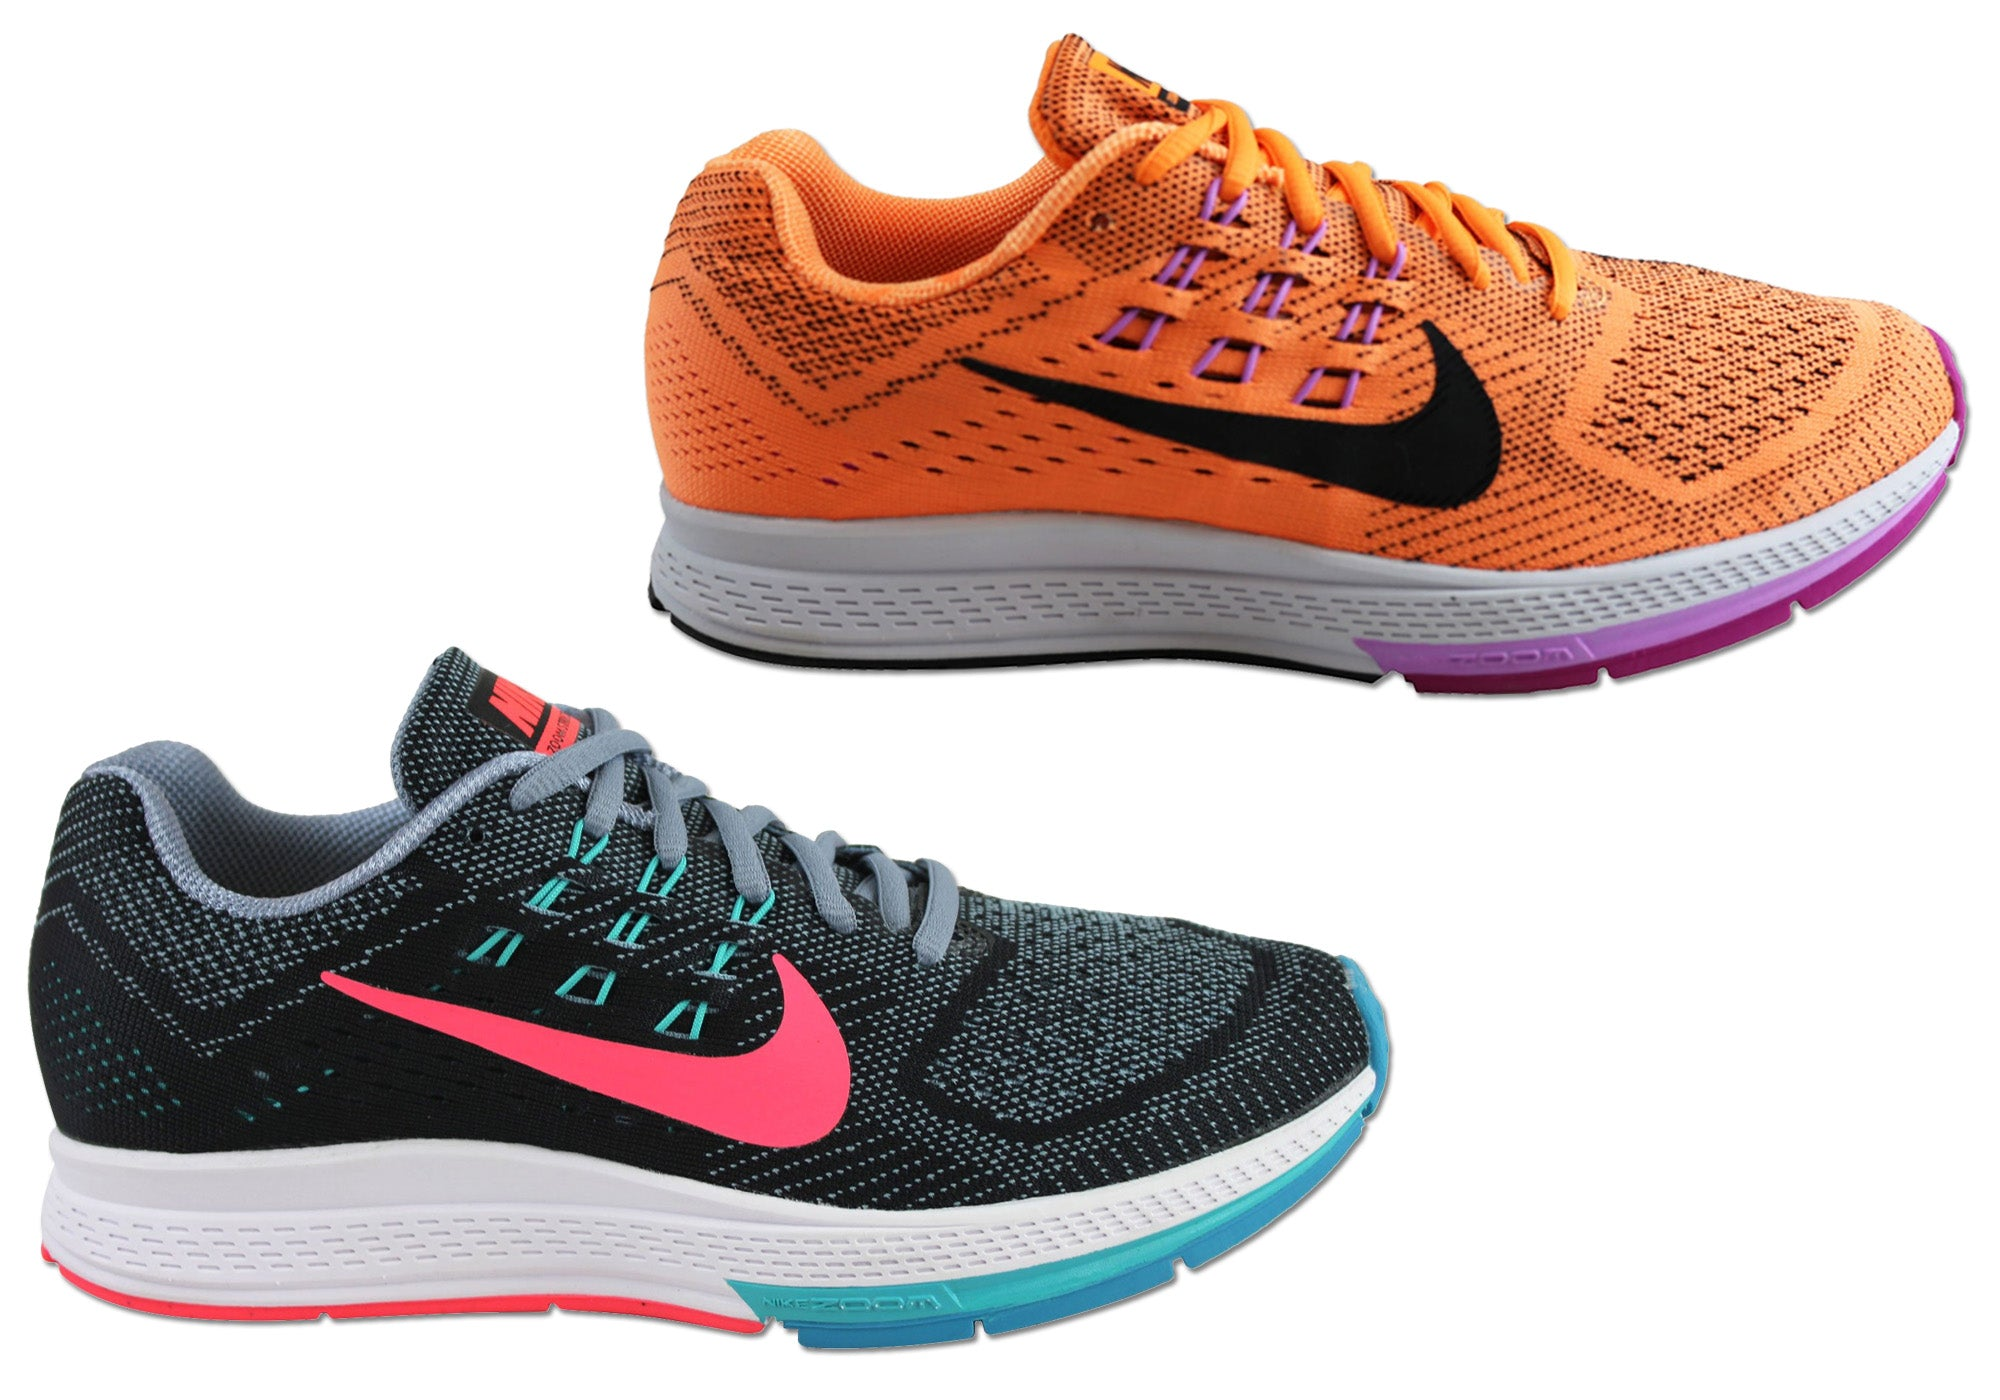 wholesale dealer cfaff b7c85 Details about NEW NIKE AIR ZOOM STRUCTURE 18 WOMENS PREMIUM CUSHIONED  RUNNING SHOES